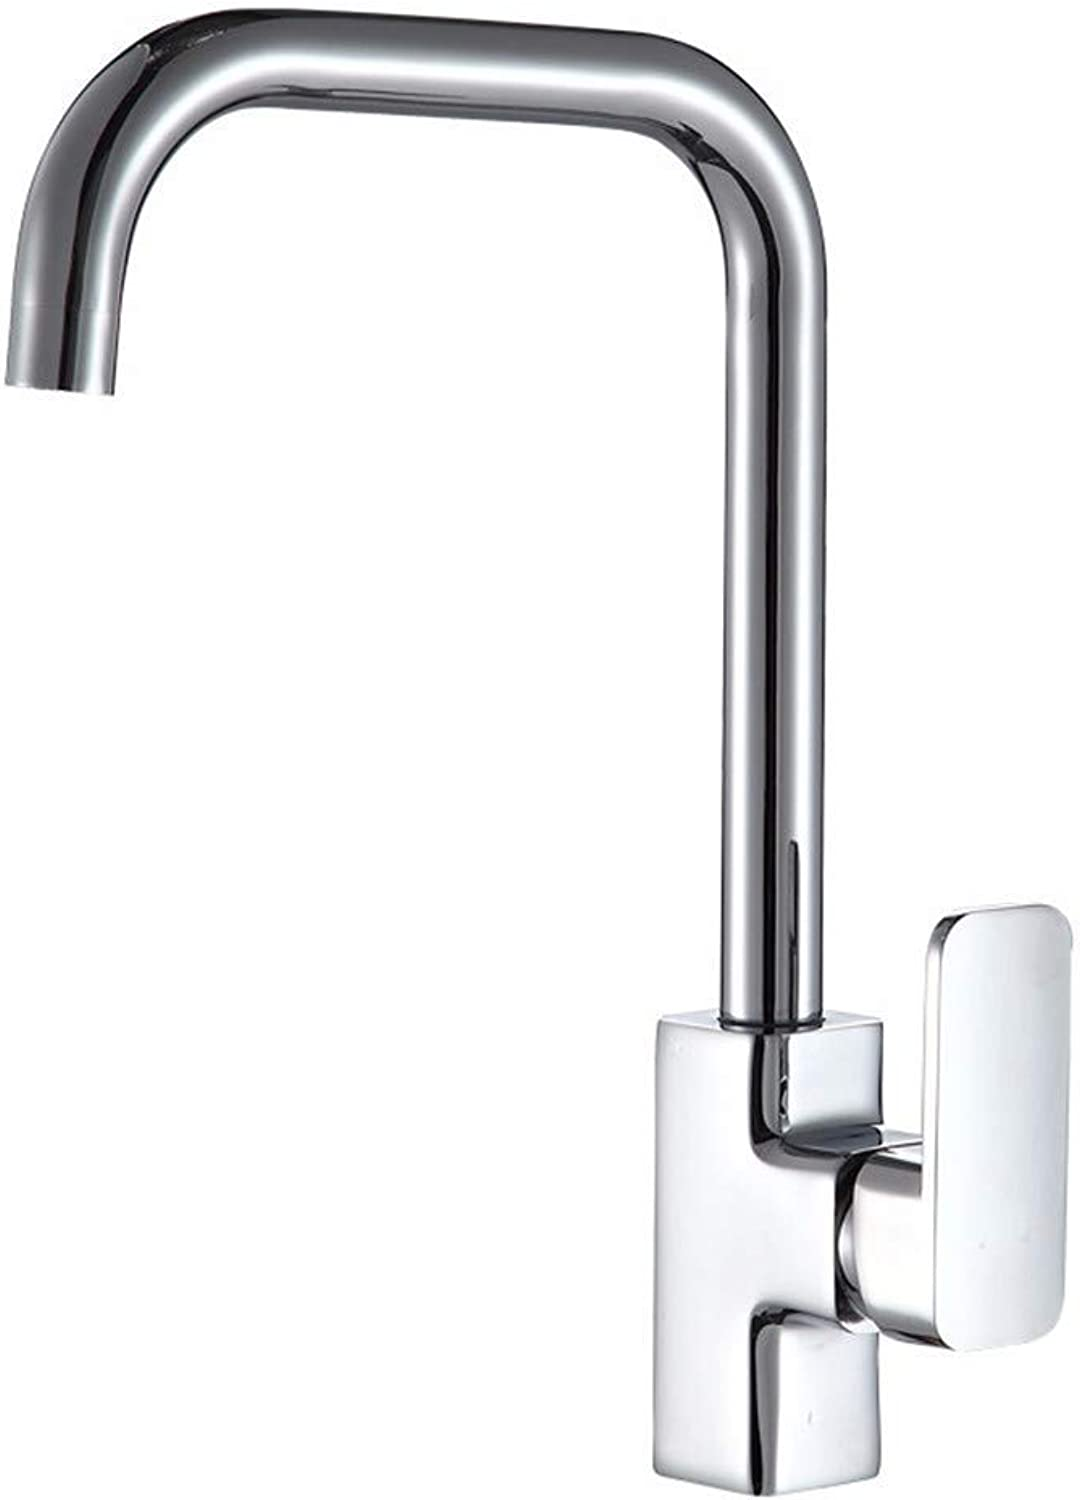 Oudan Plating Kitchen Sink Faucet Tap redatably Cold Vegetables Basin Faucet CopperS65-UE6589321849 (color   -, Size   -)